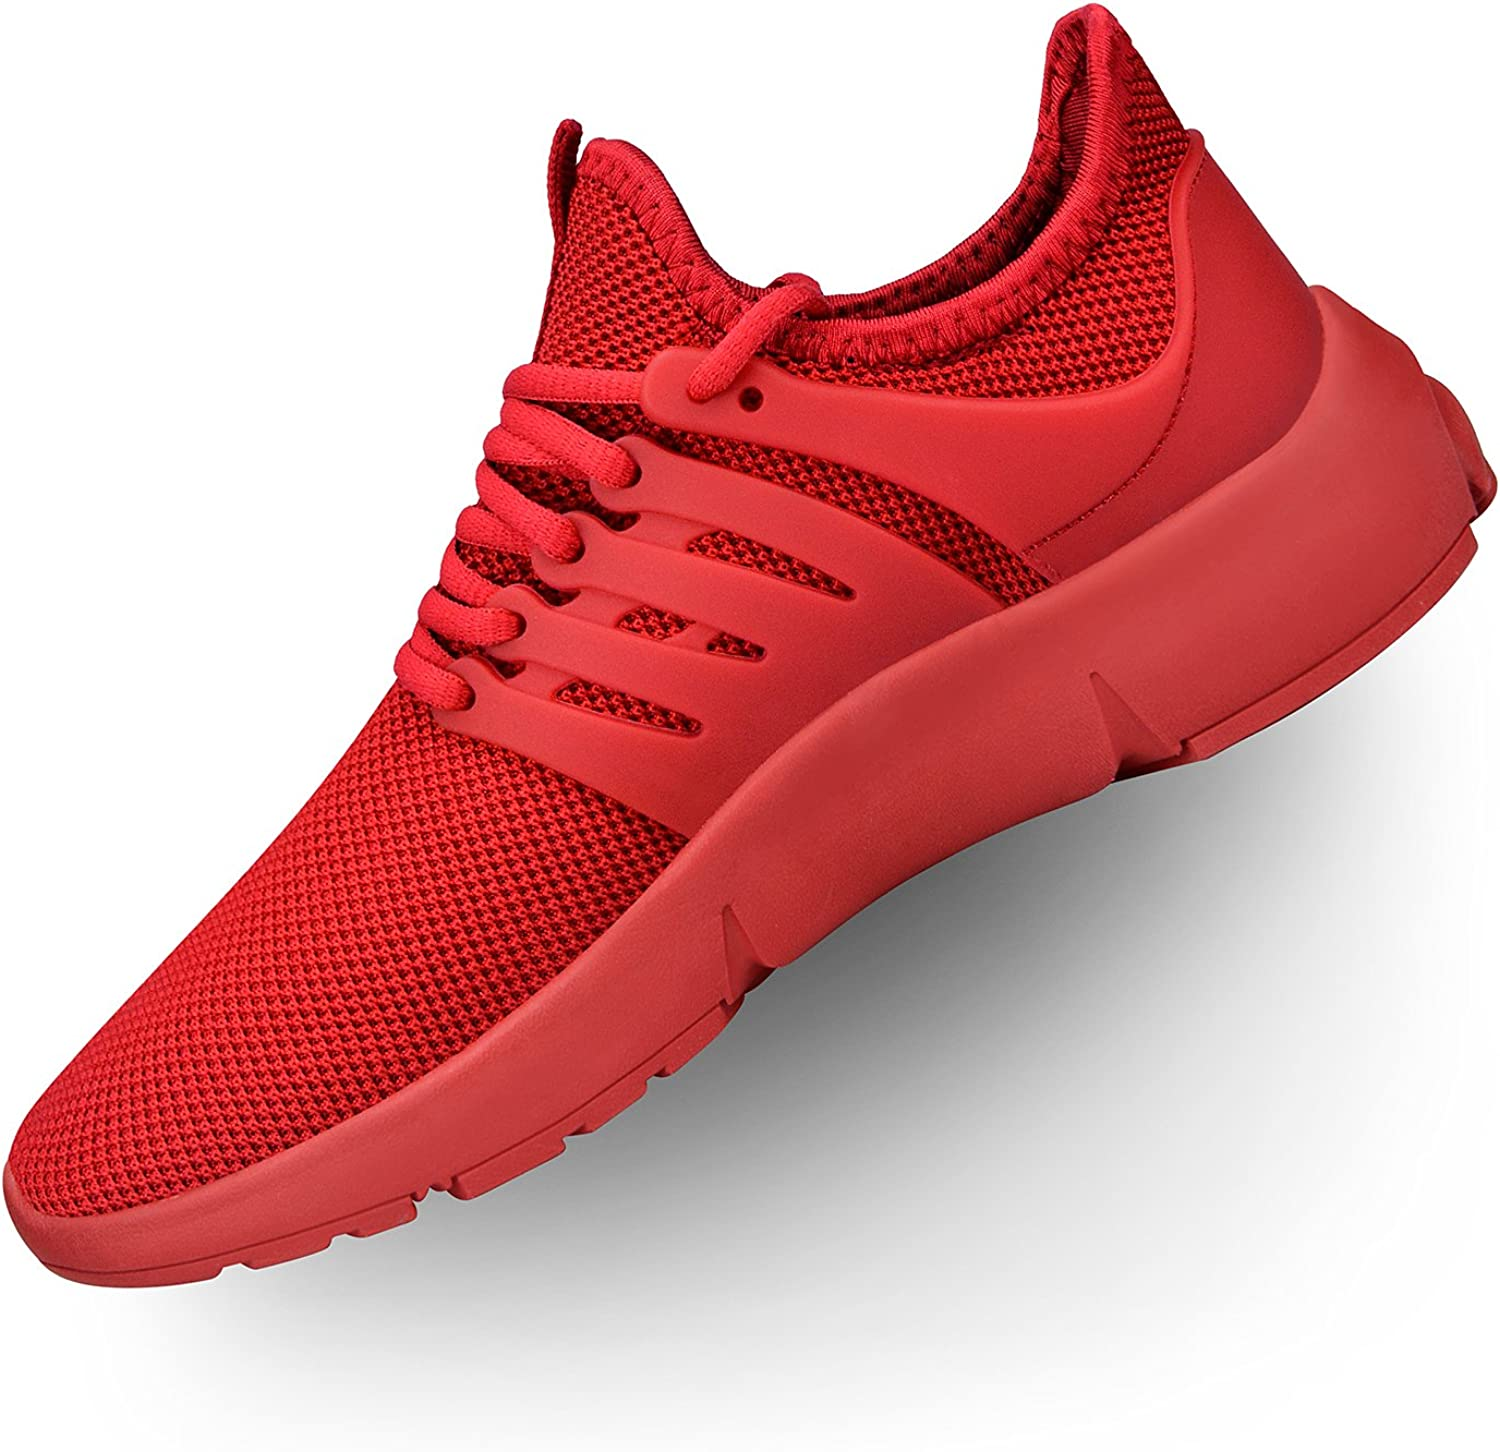 Troadlop Womens Running shoes Lightweight Non Slip Breathable Mesh Sneakers Sports Athletic Walking shoes Red 5 M US